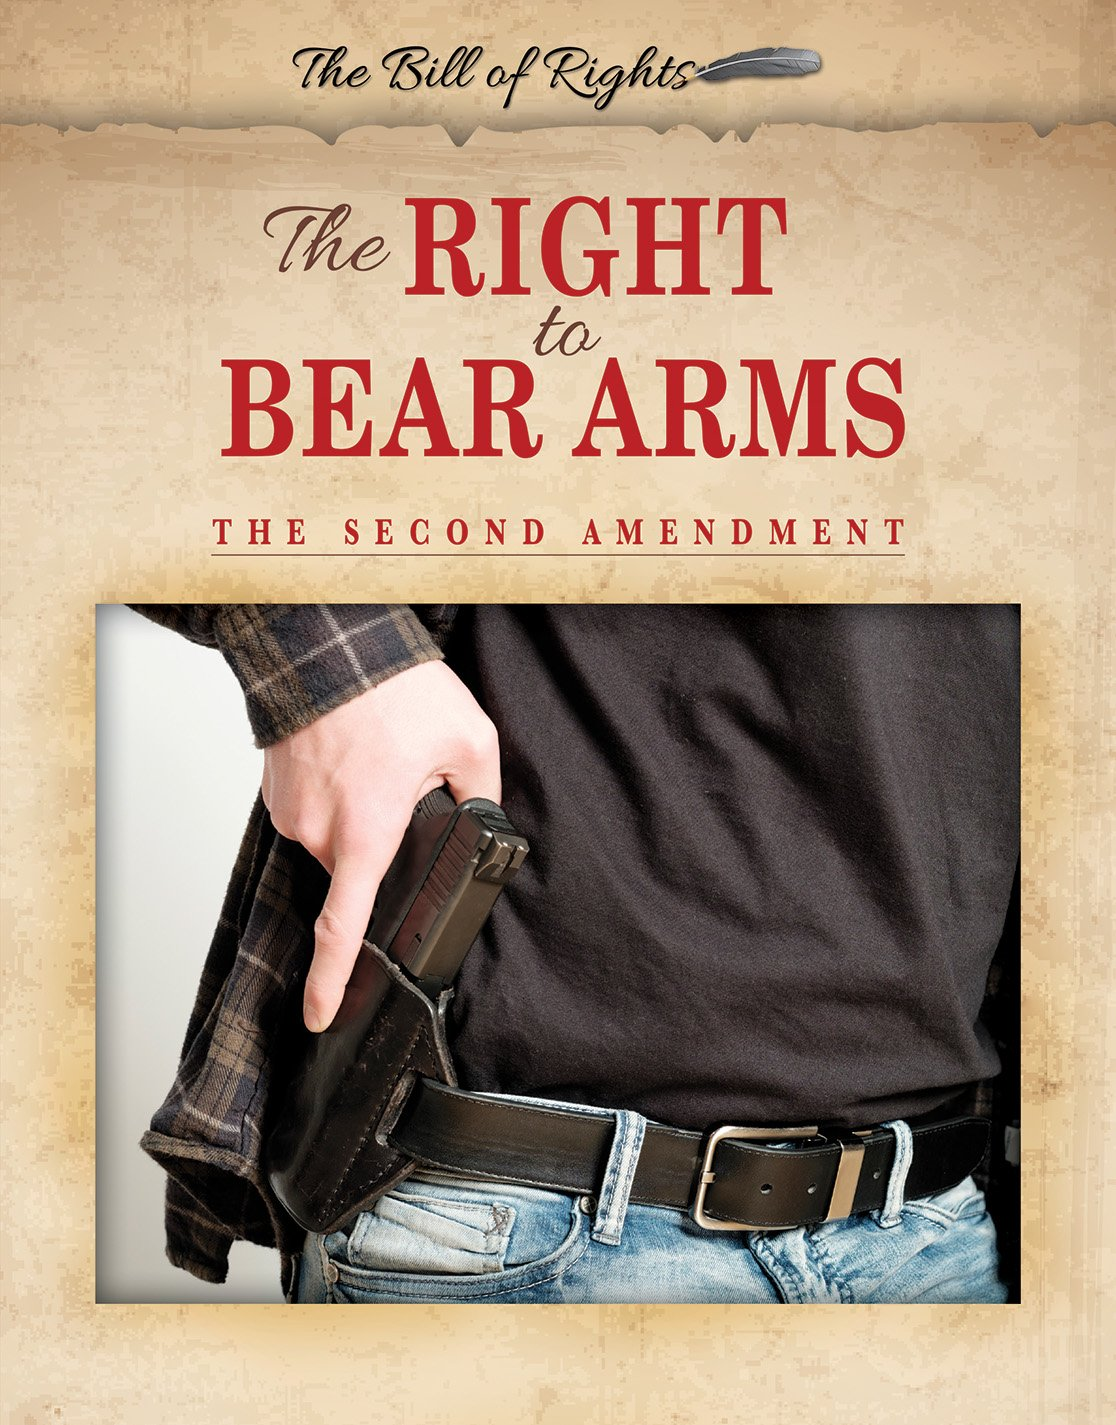 The Right to Bear Arms: The Second Amendment (The Bill of Rights)